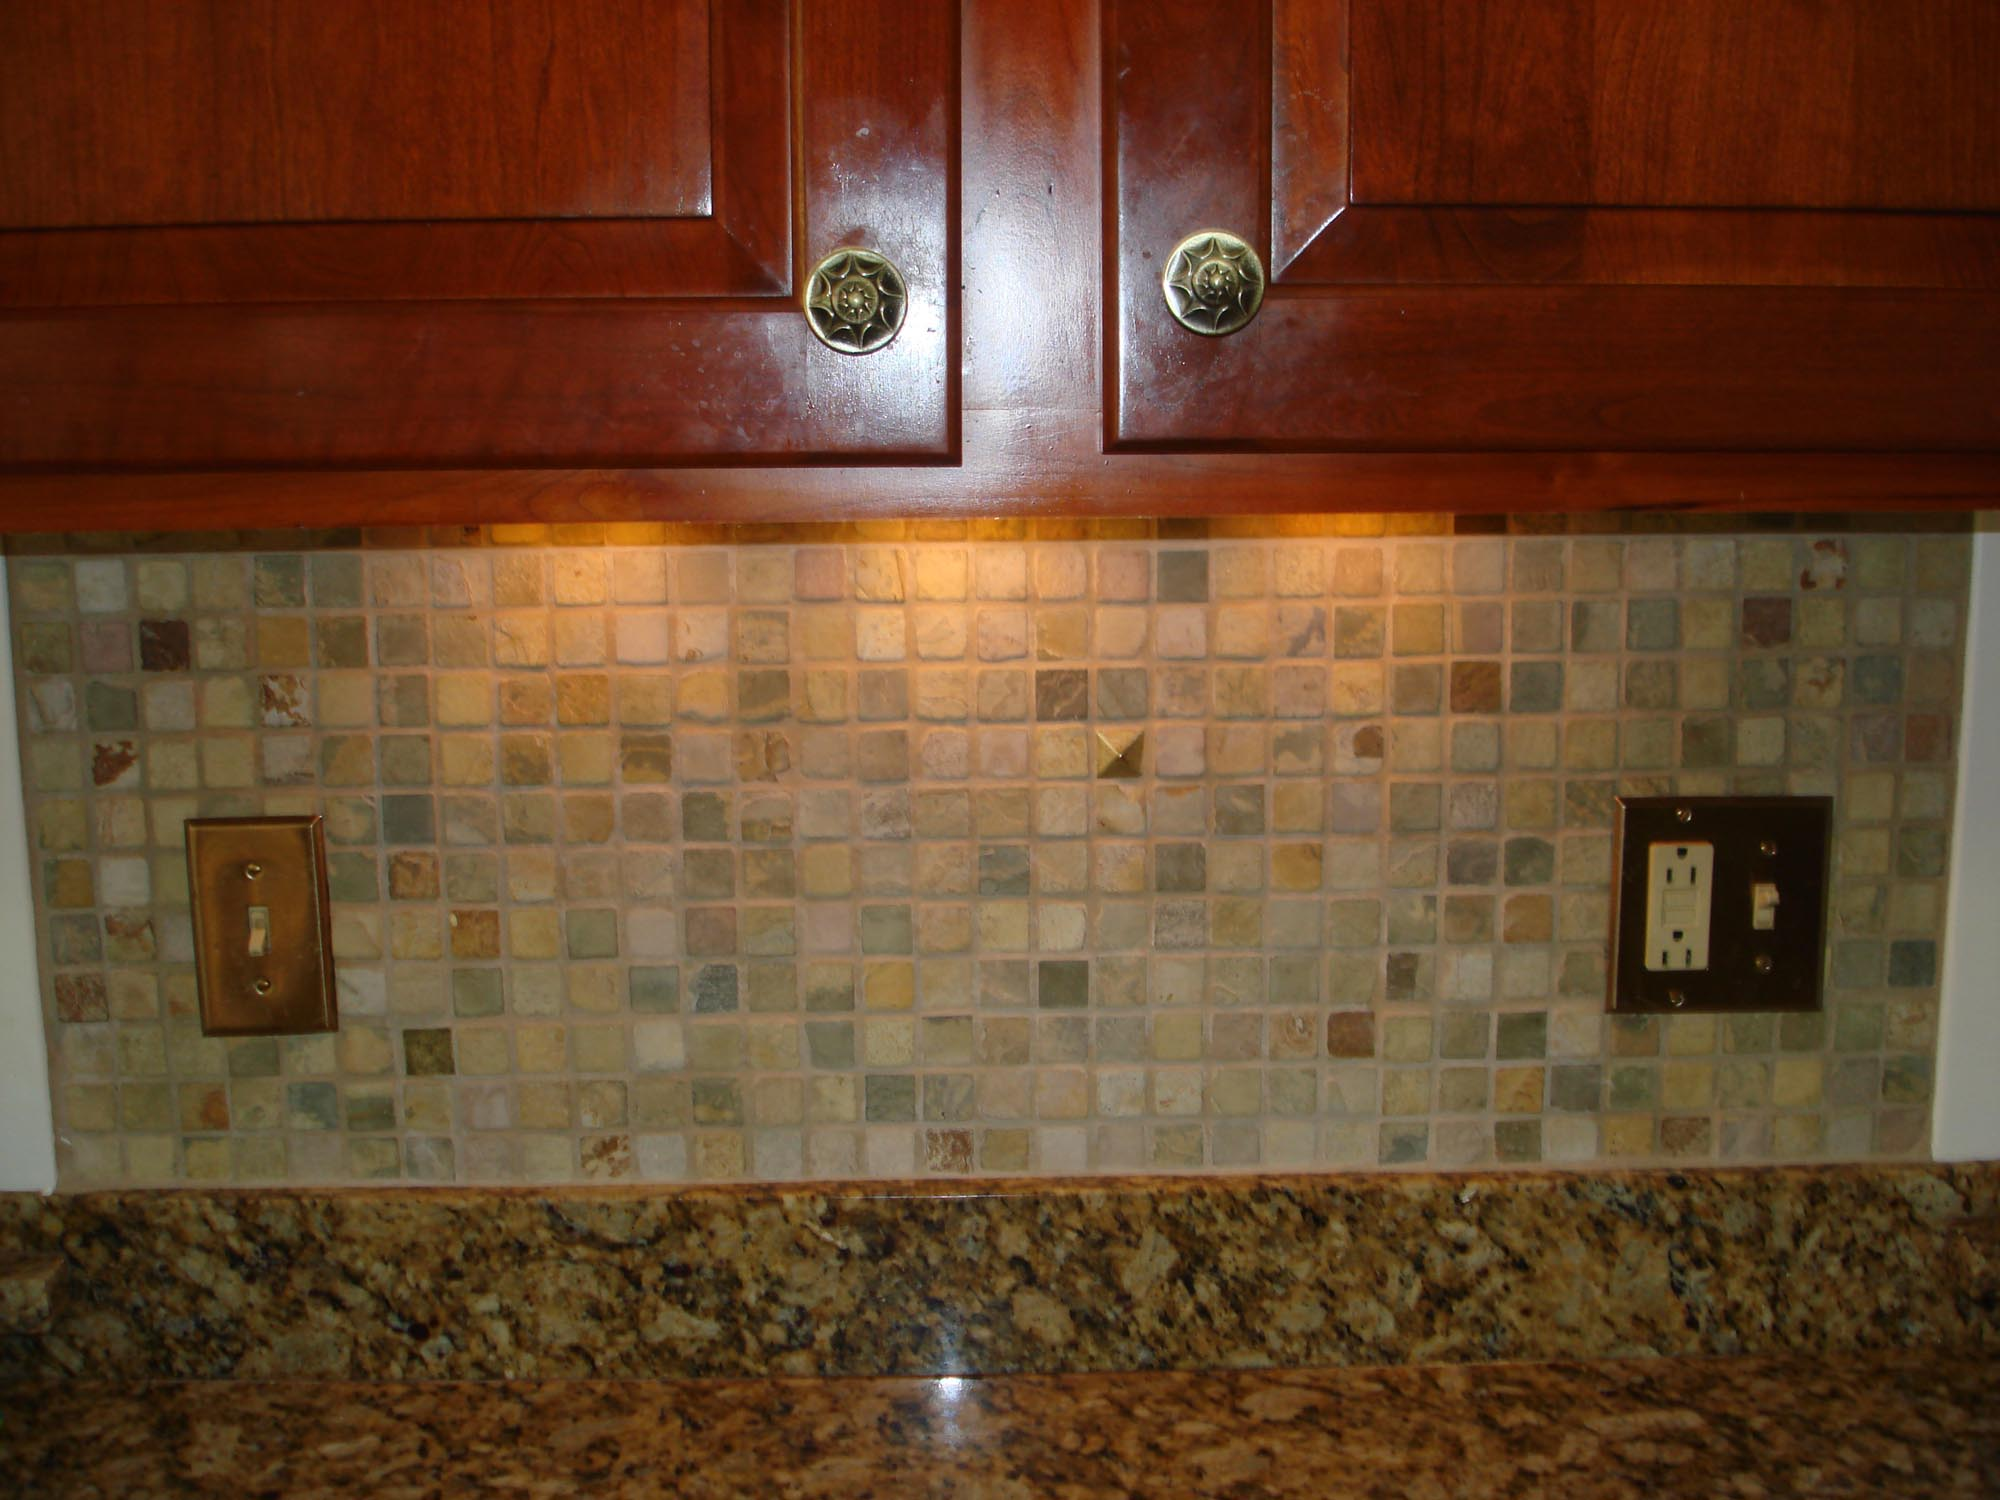 Stone mossaic backsplash with metal decos new jersey custom tile - Custom kitchen backsplash tiles ...